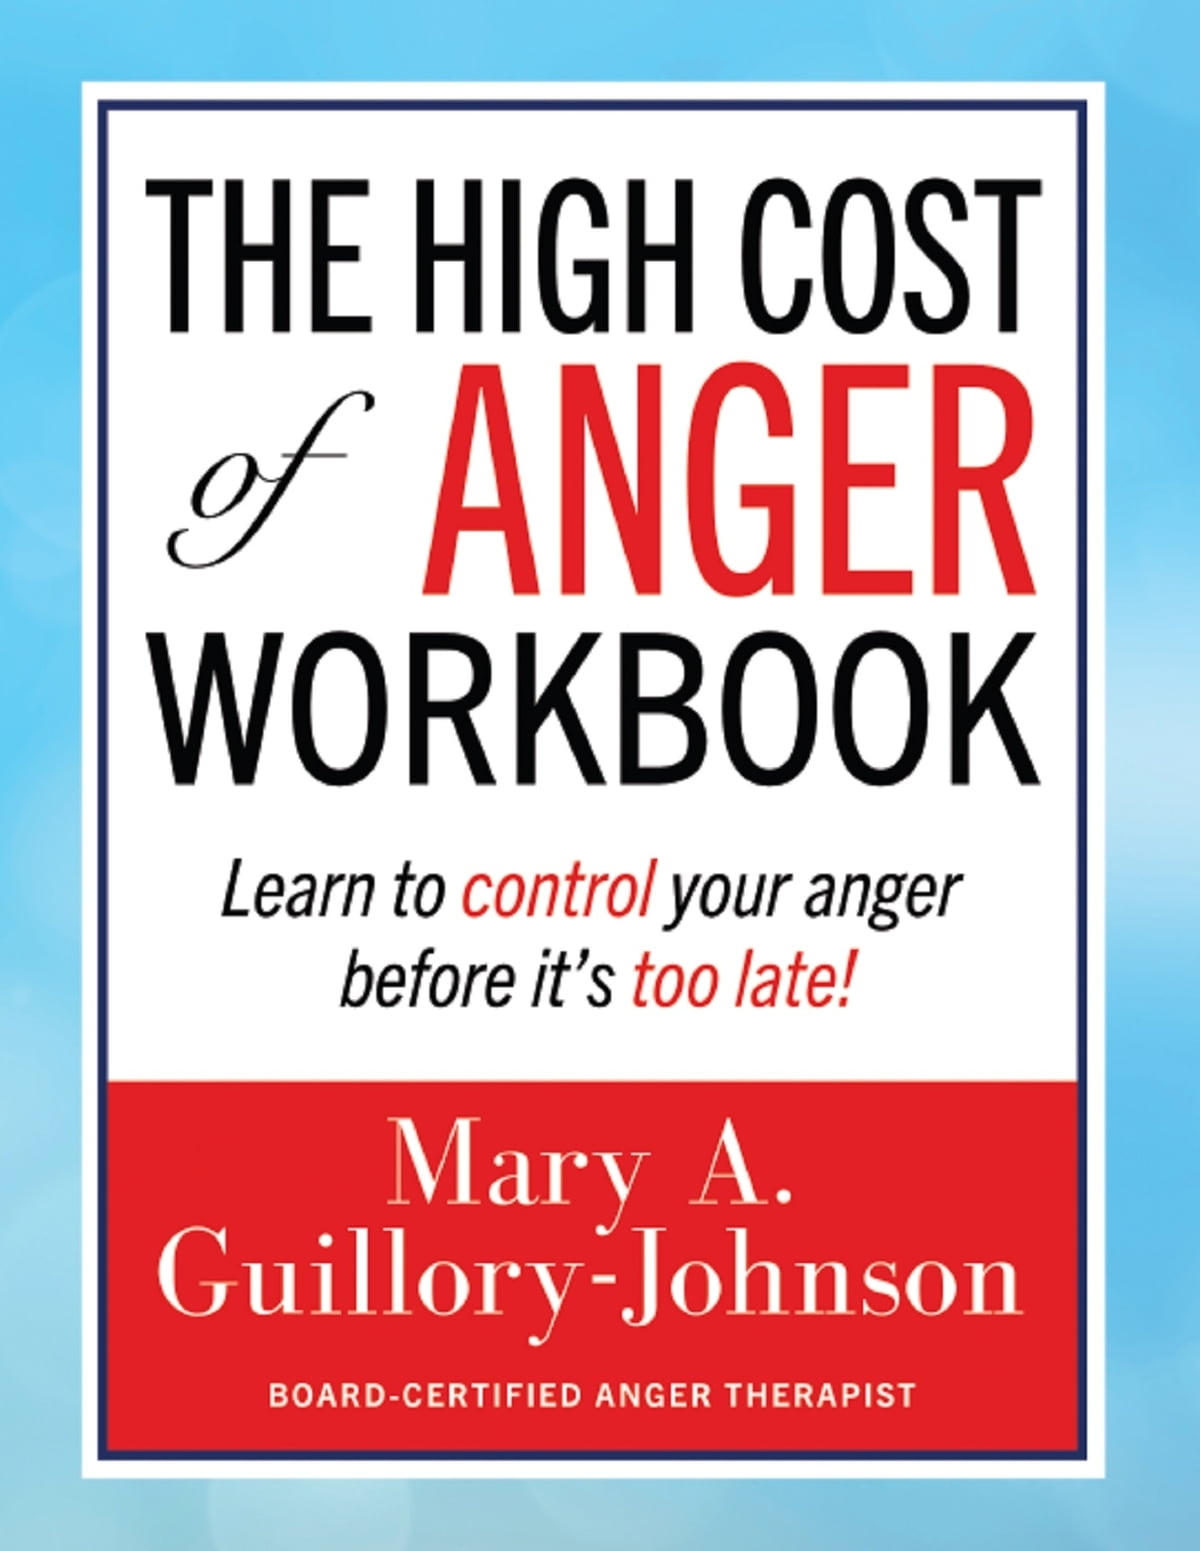 Workbooks anger workbook : The High Cost of Anger Workbook eBook by Mary A. Guillory-Johnson ...